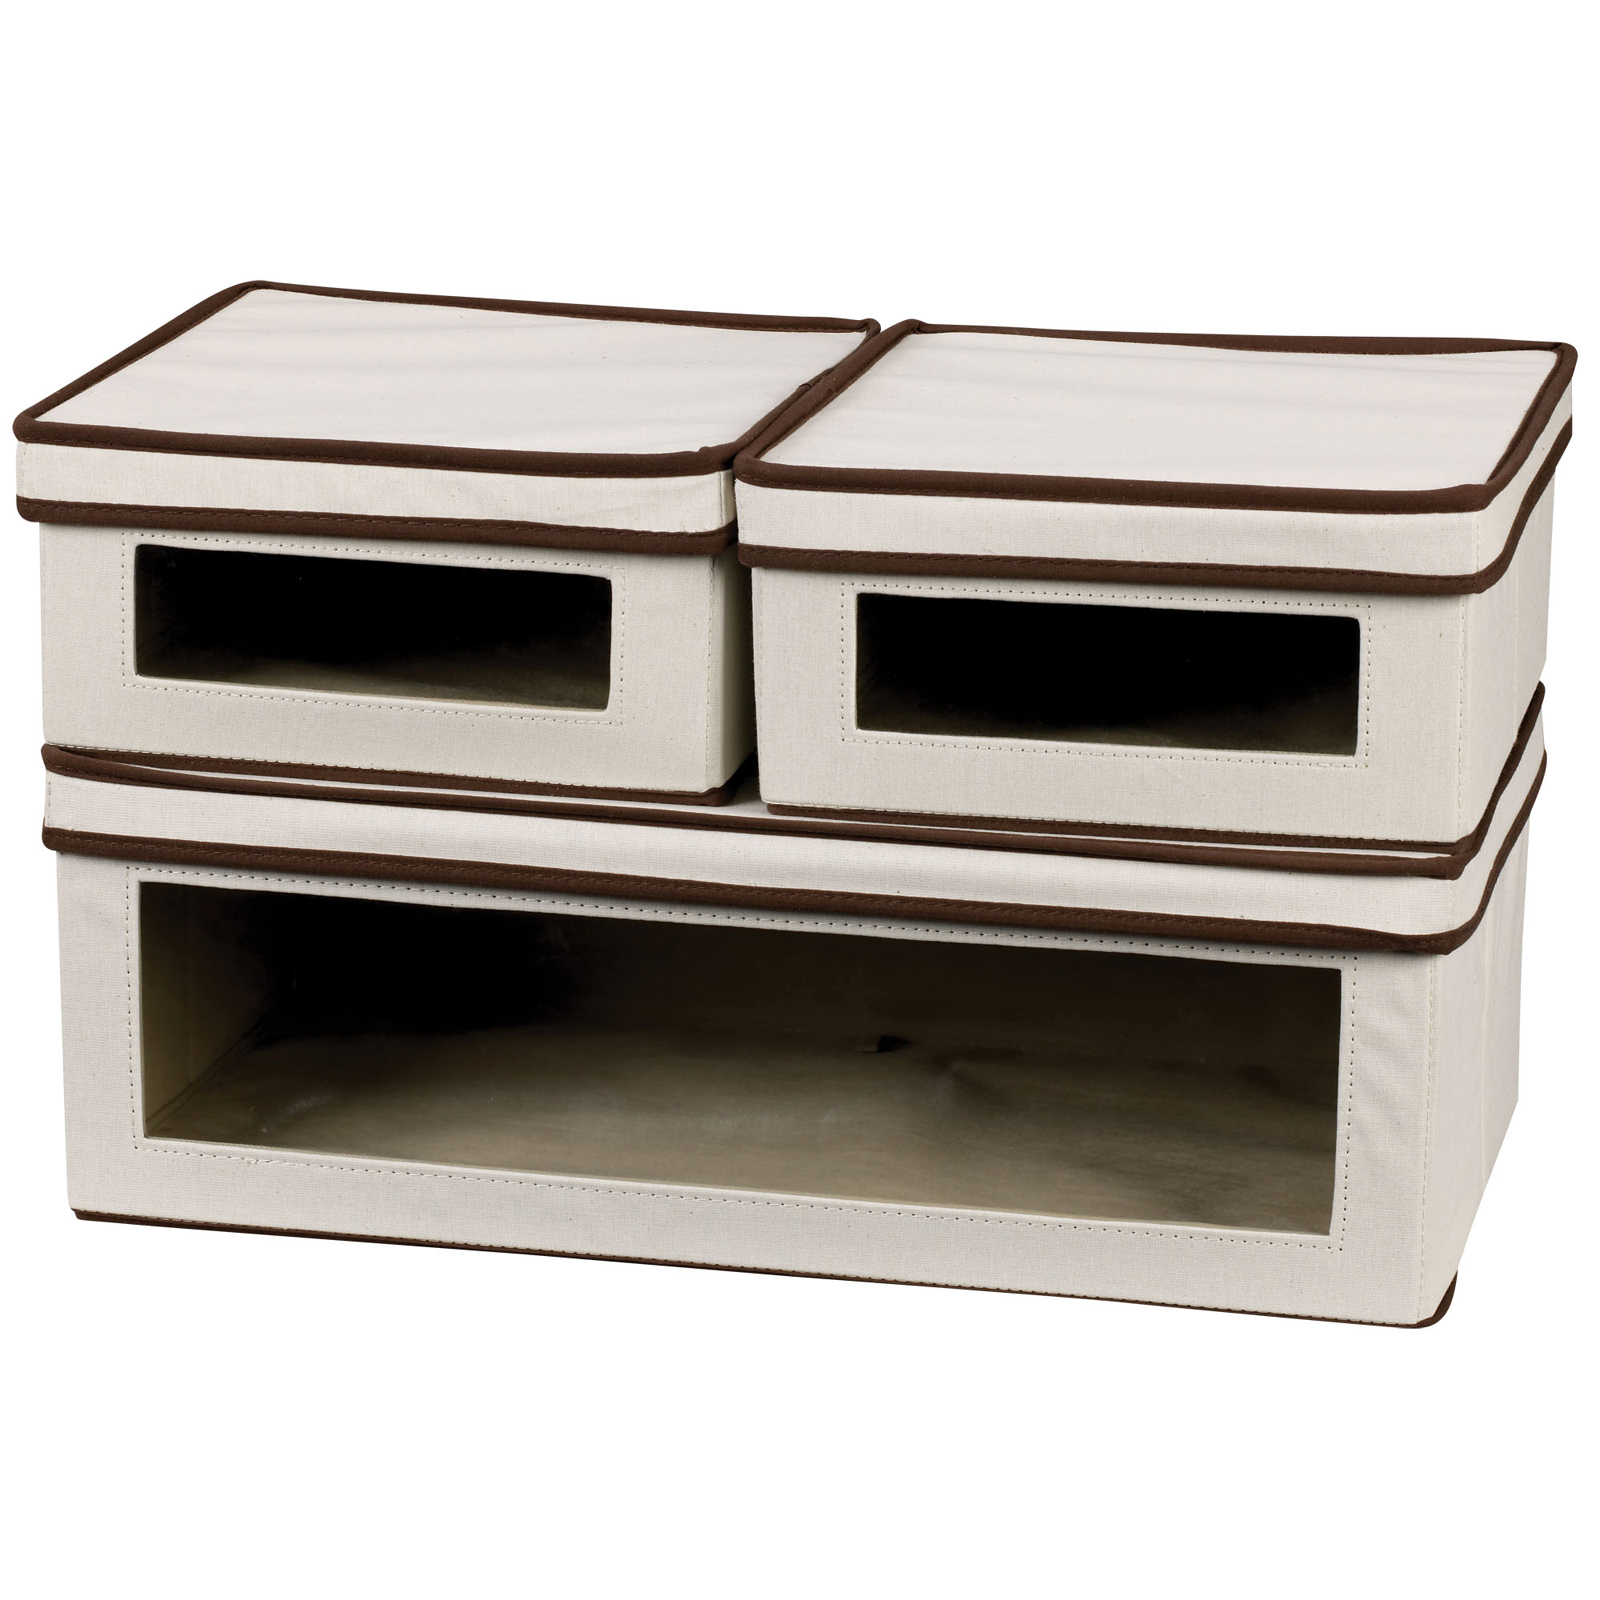 ... Set Of 3 Vision Shoe Storage Boxes ...